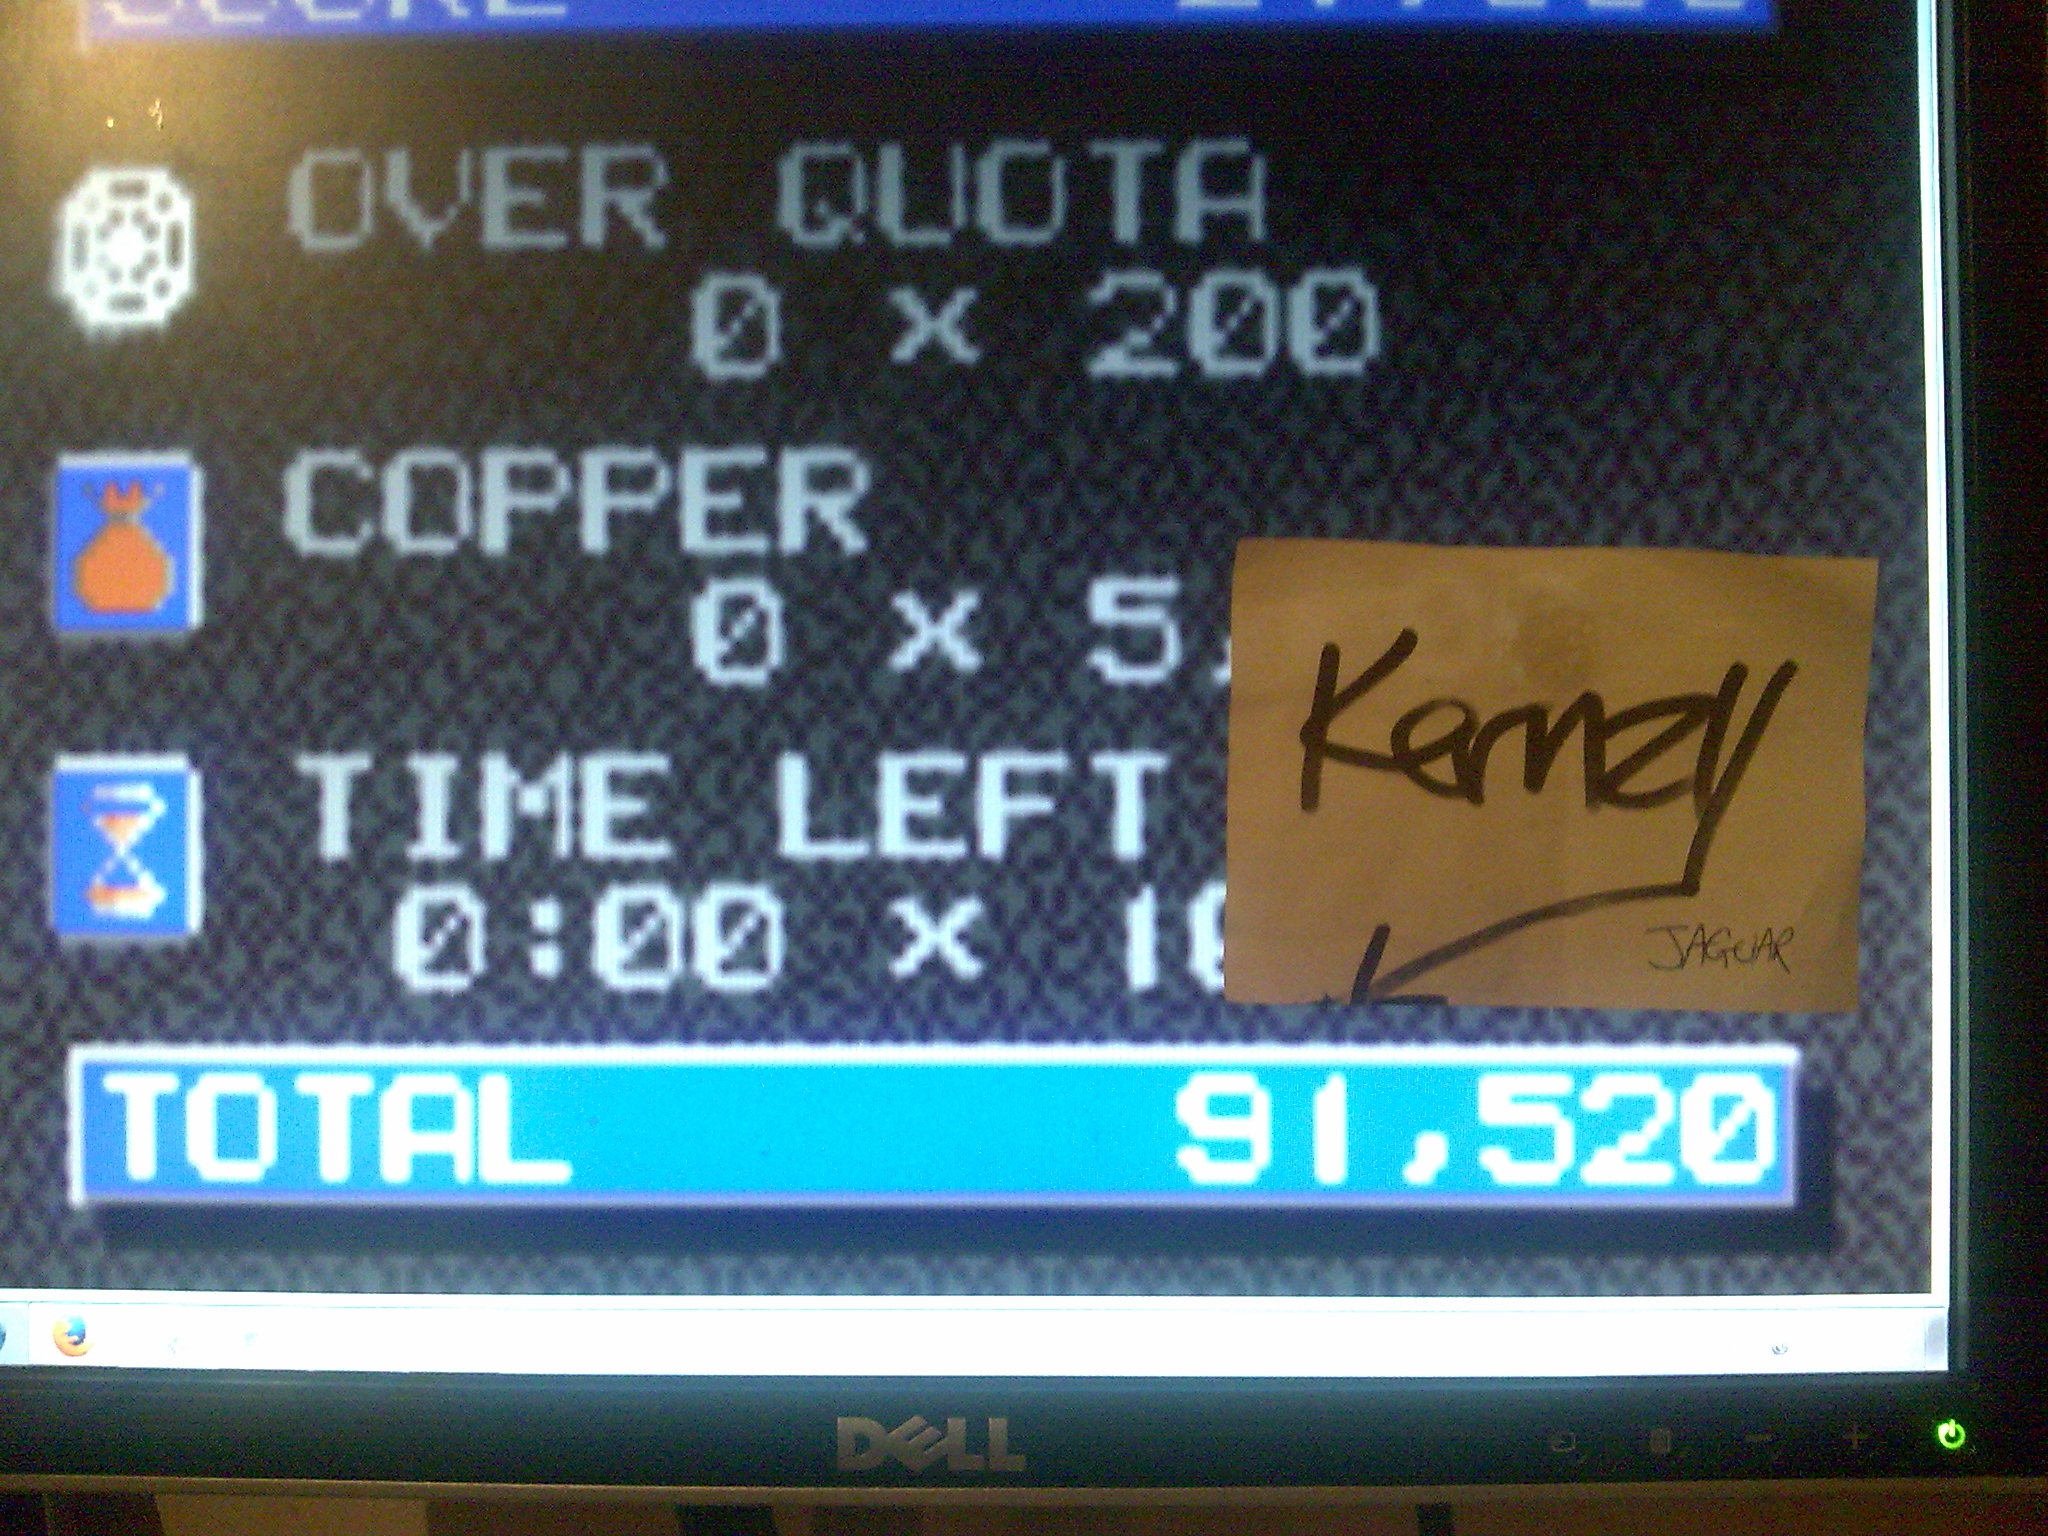 kernzy: Crystal Mines II (Atari Lynx Emulated) 91,520 points on 2014-10-12 17:54:22